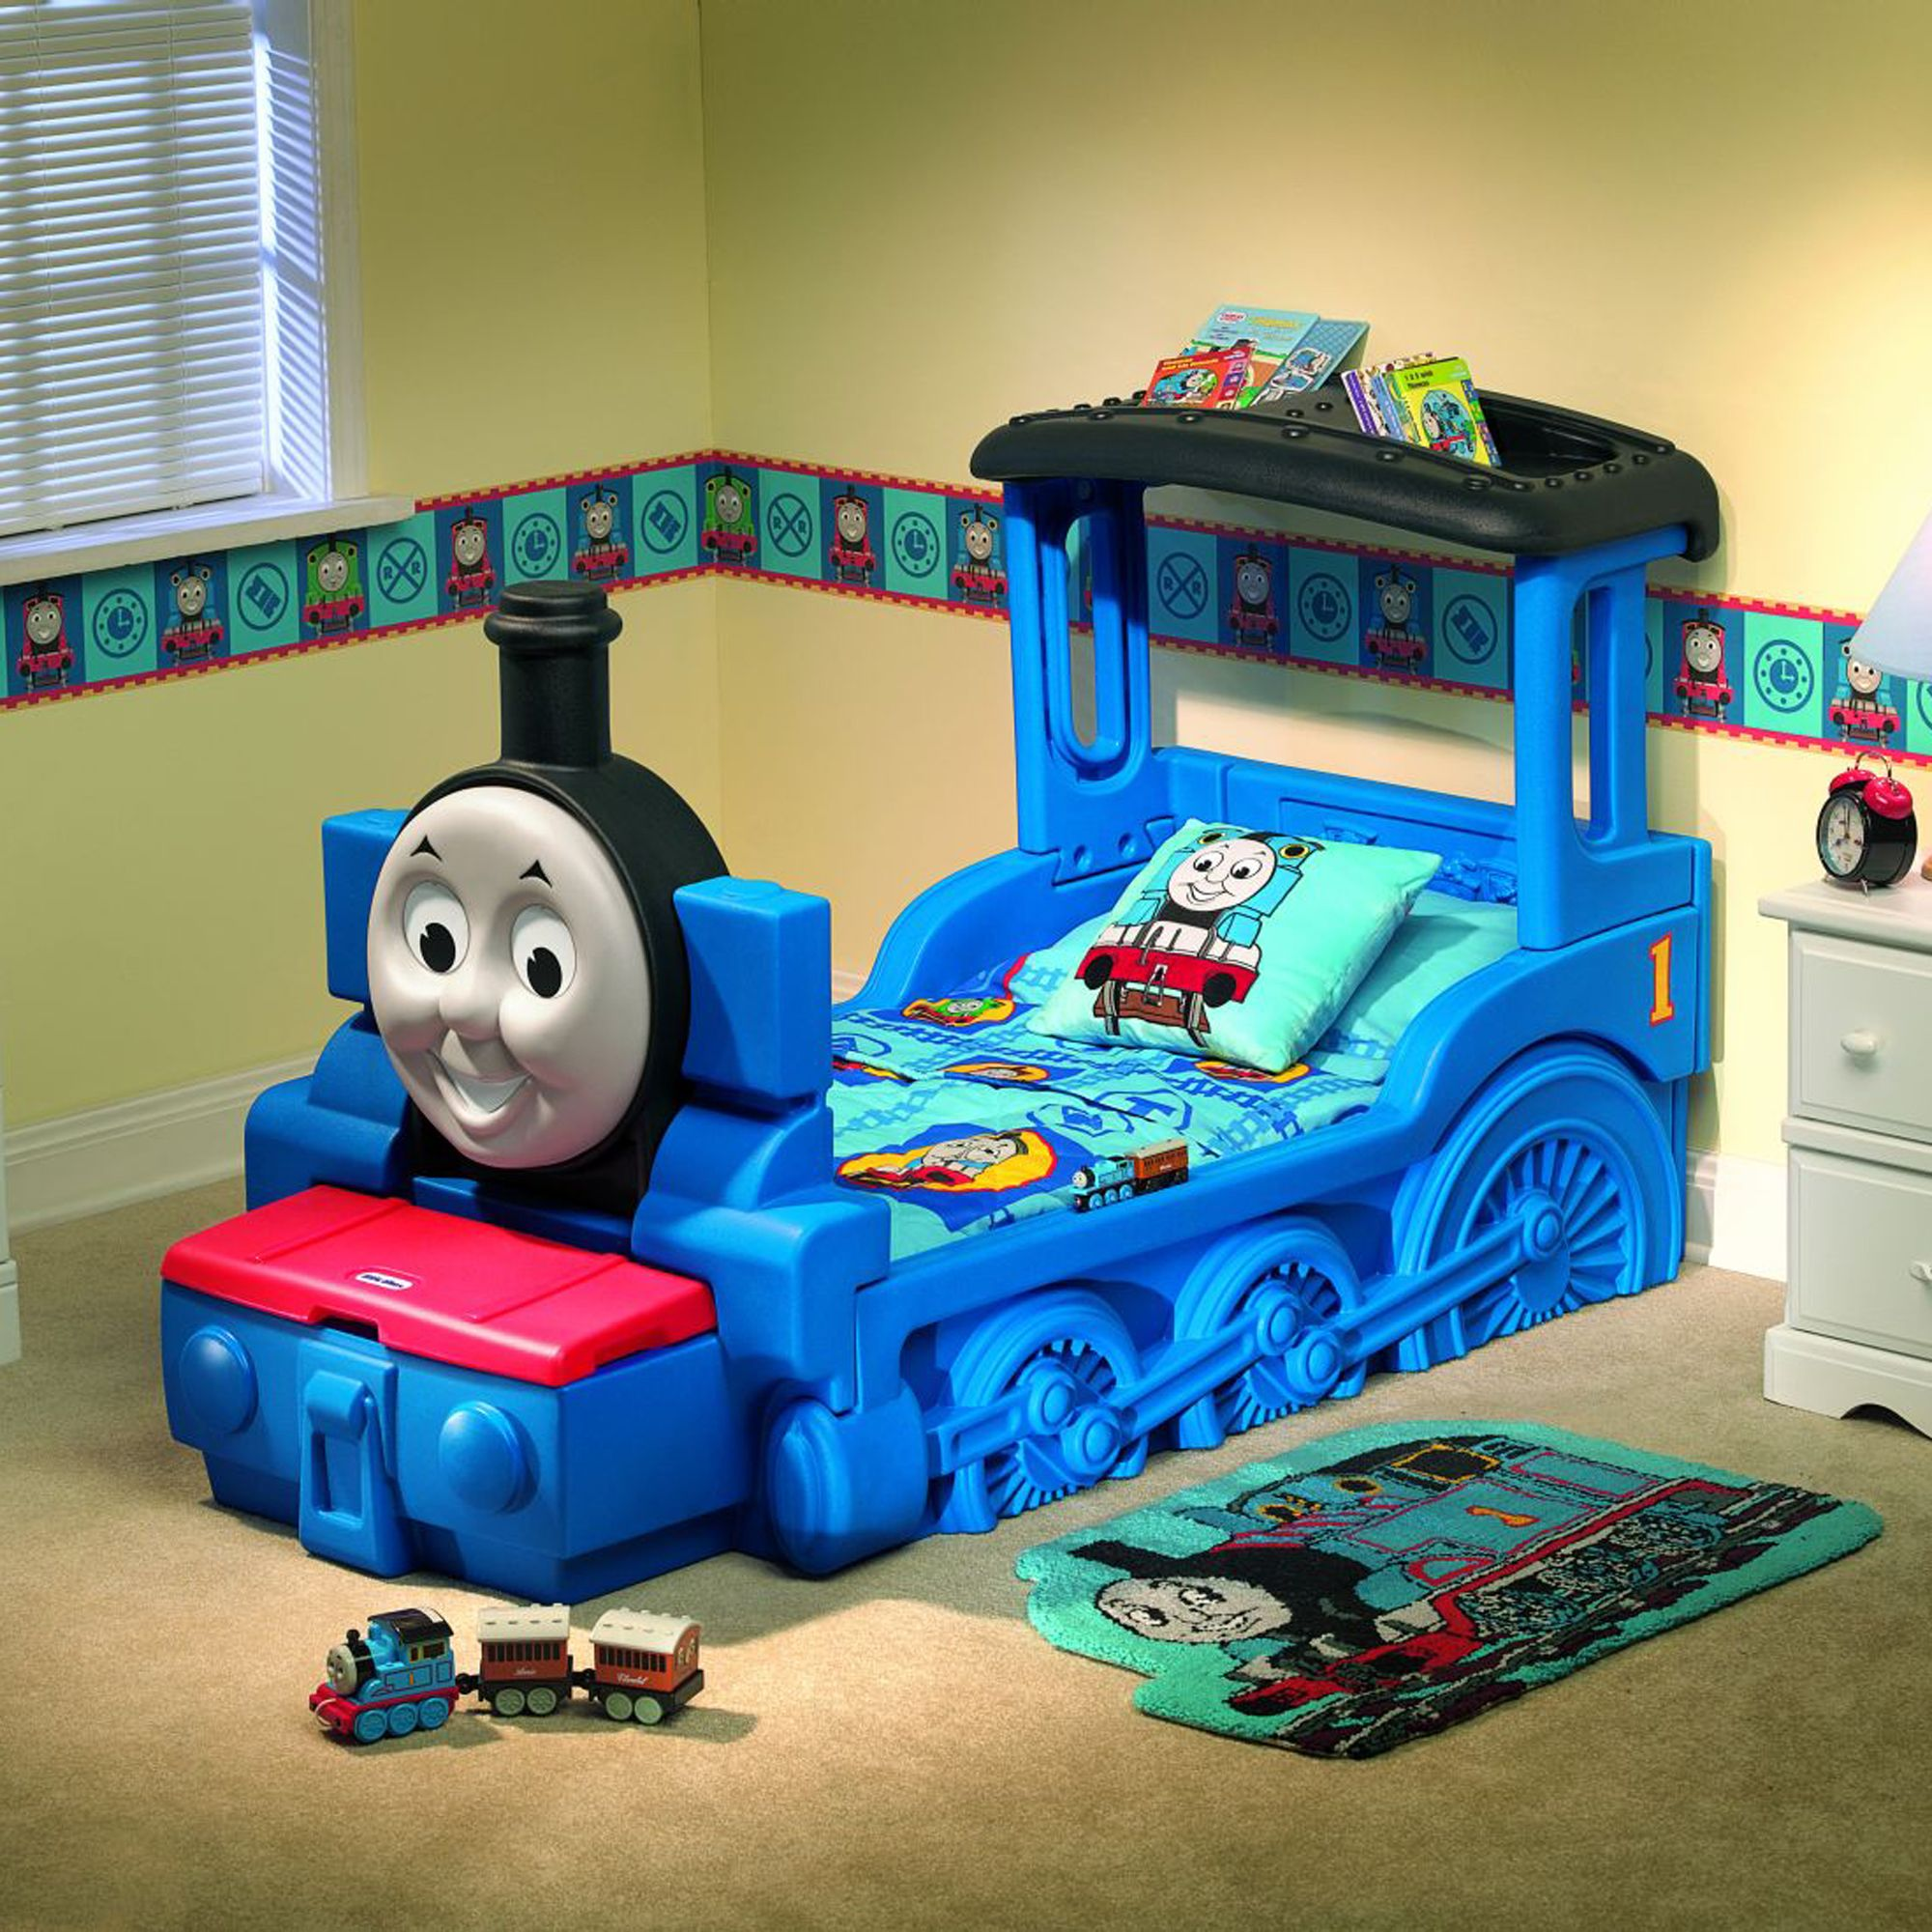 Little Tikes Thomas & Friends Train Bed